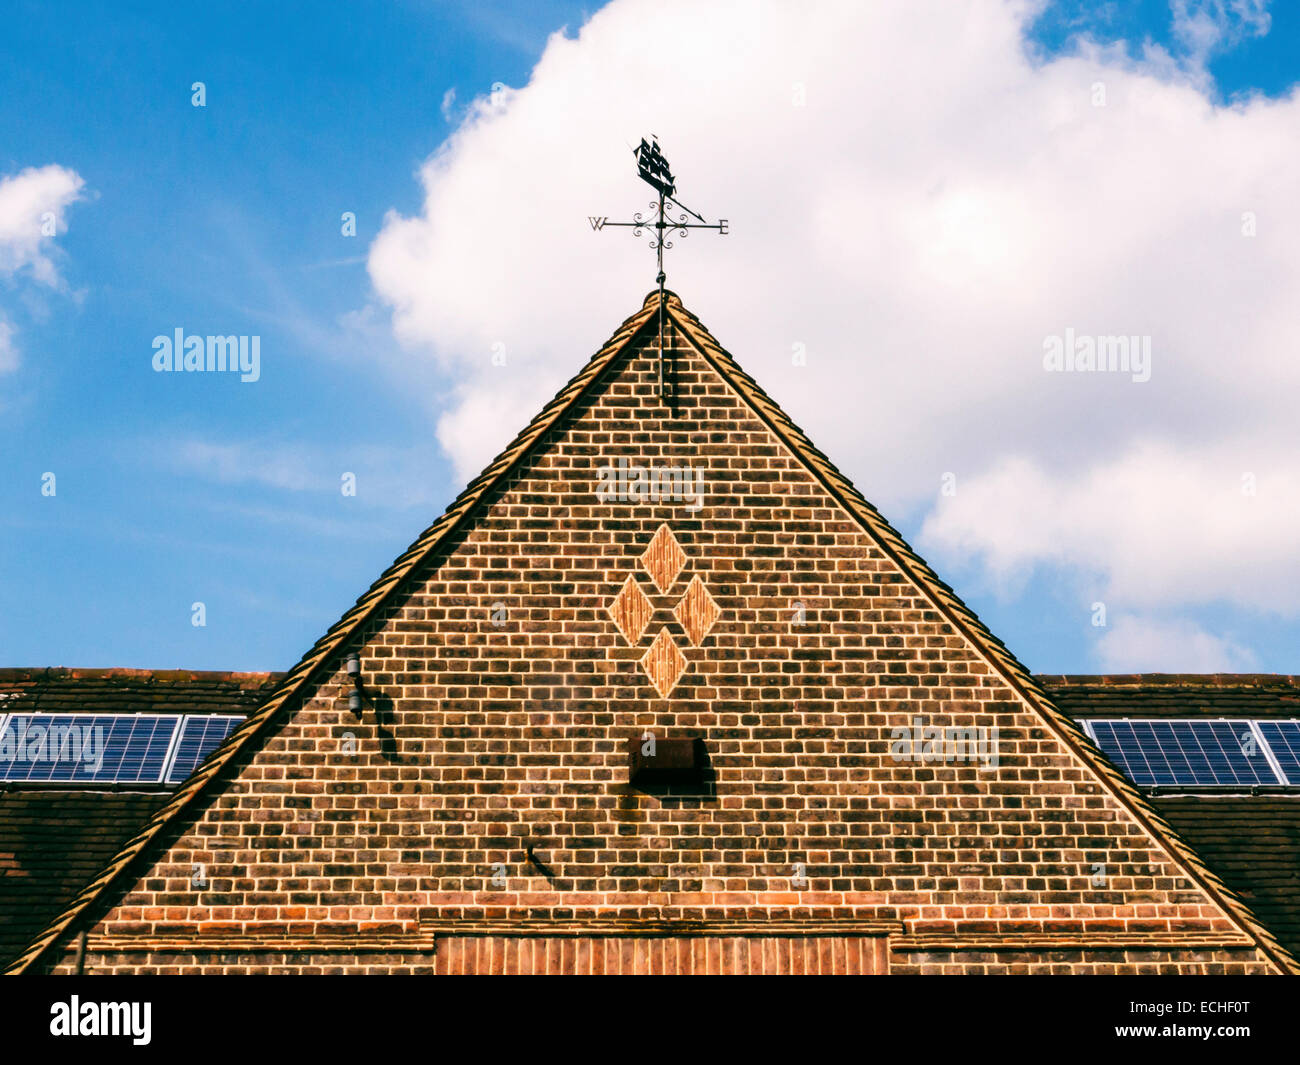 Ship weather vane on brick gable and solar panels on roof of building in Whitton, Twickenham - Stock Image